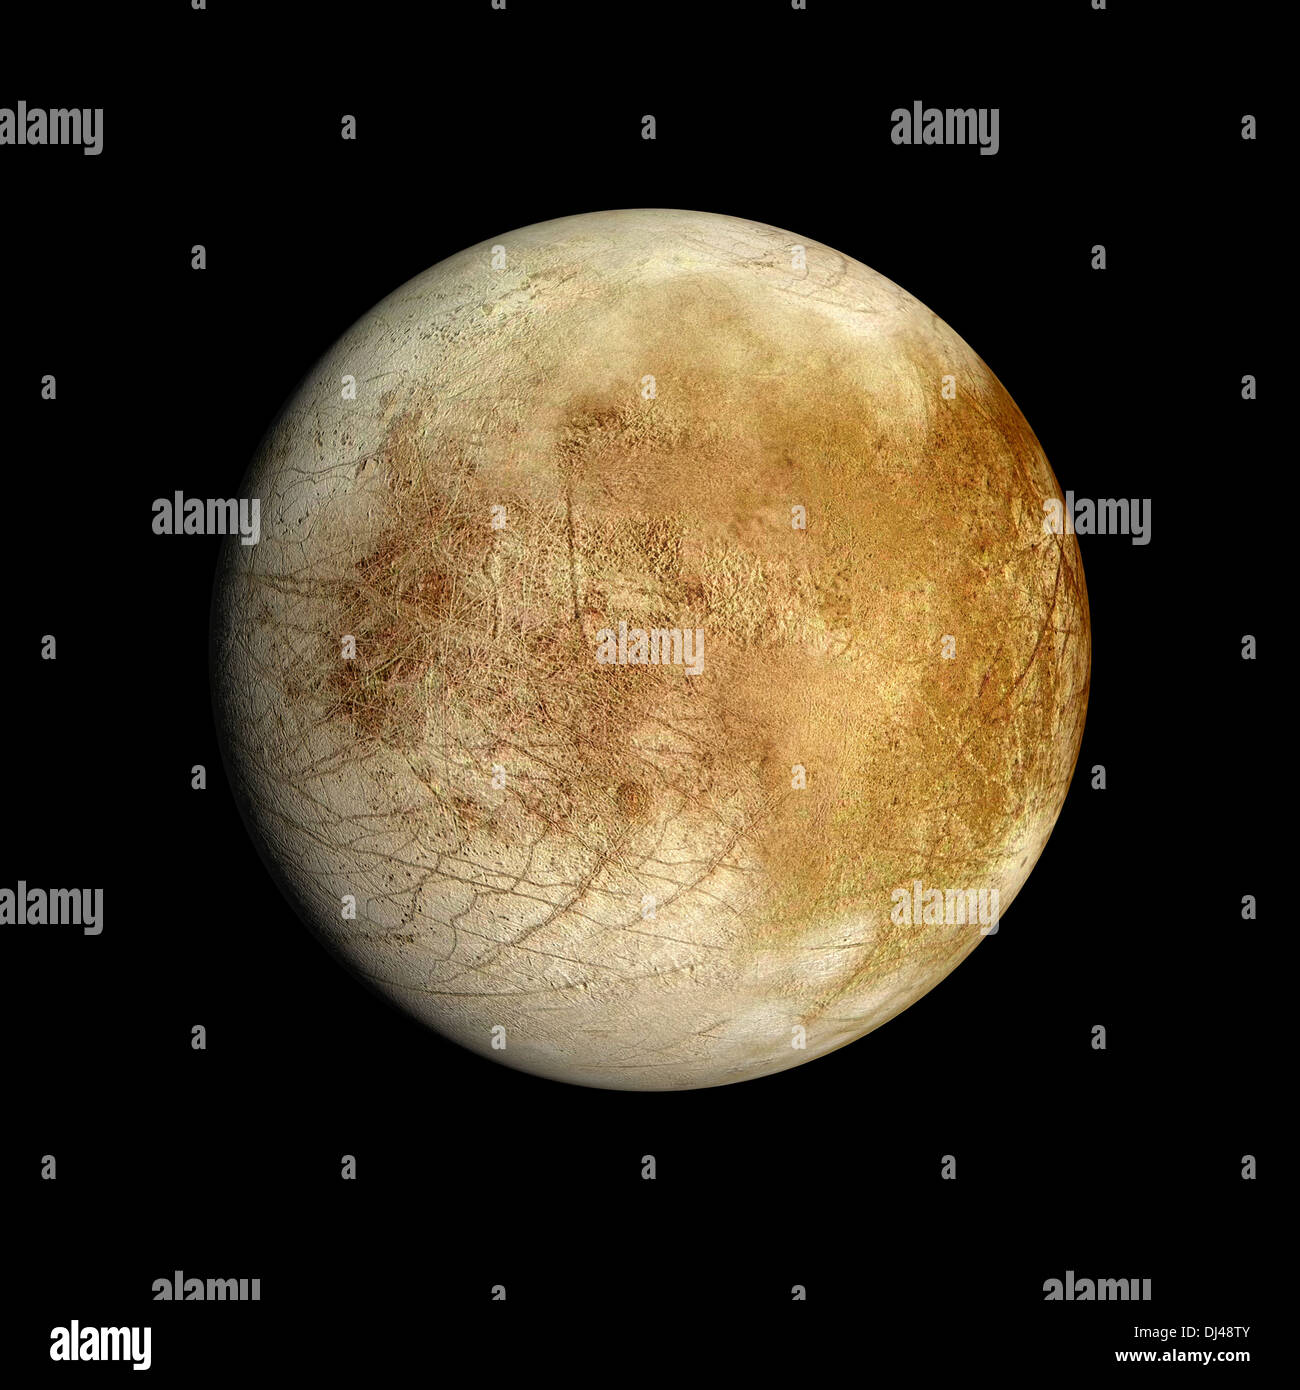 A rendered Image of the Jupiter Moon Europa on a clean black background. - Stock Image